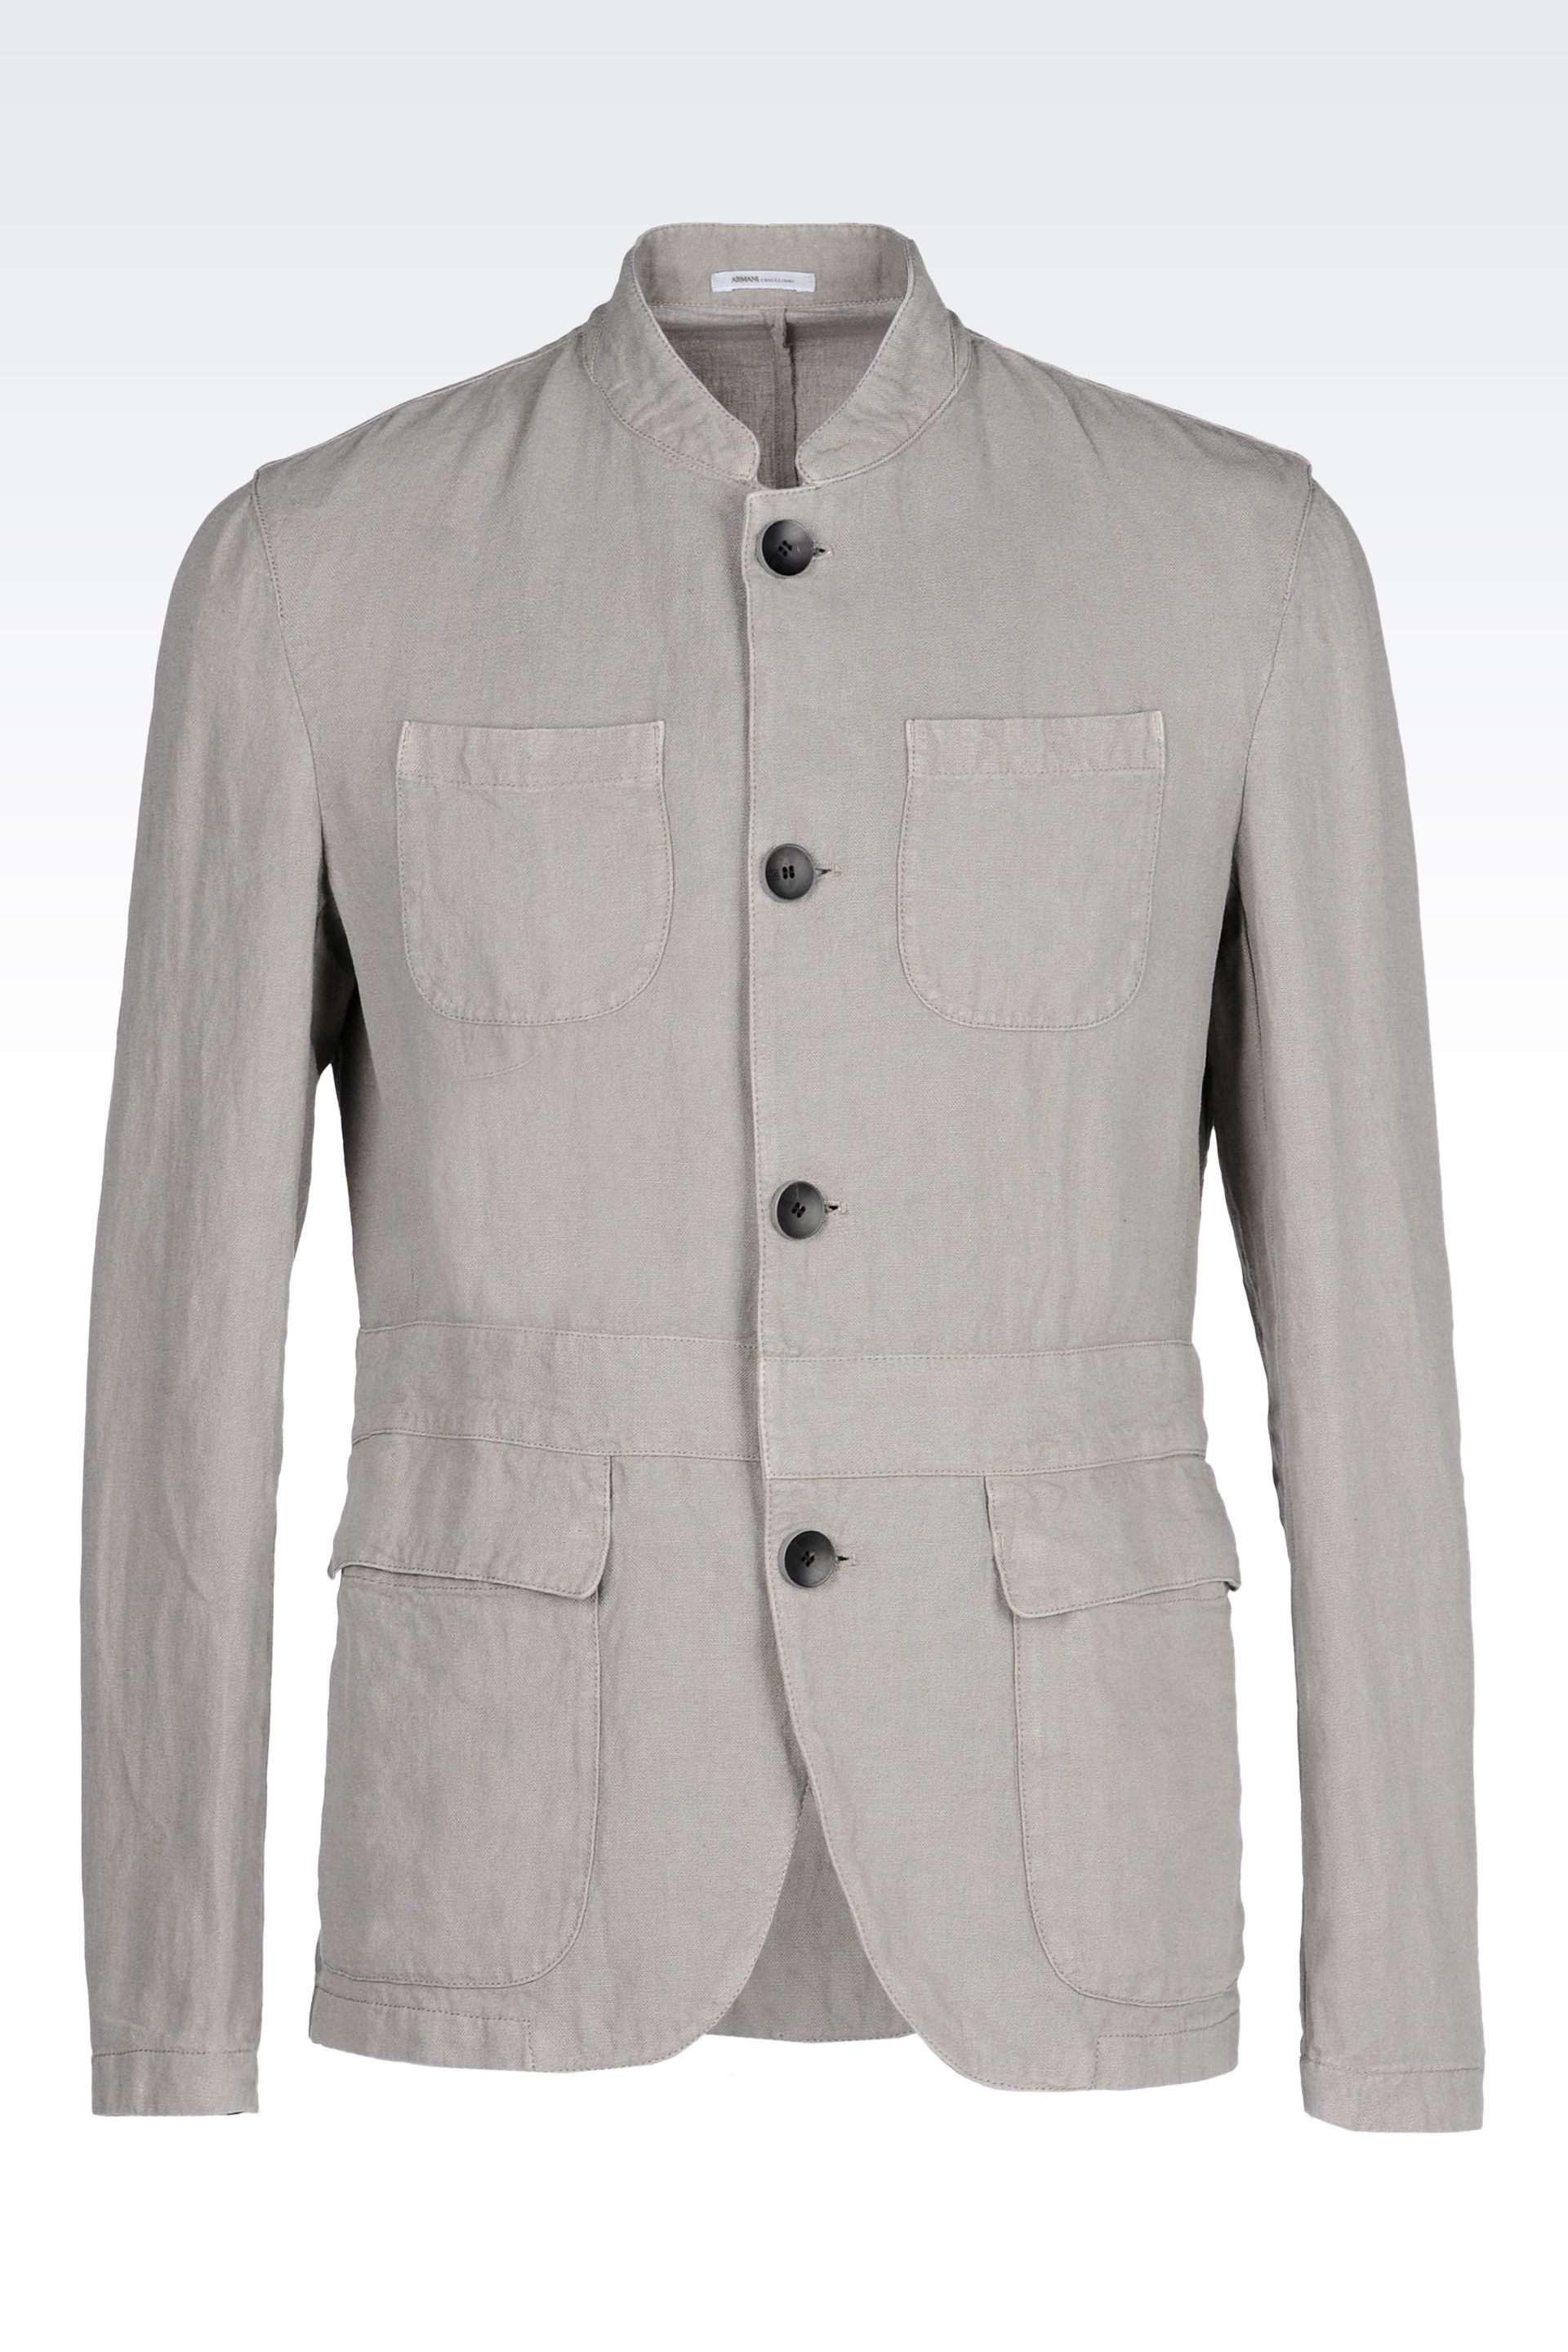 A light grey tone in a casual parka style or quilted coat offers a subtle contrast to pastel jeans and a printed blouse. Choose from minimalist biker jackets in soft leathers and suedes, or opt for a draped cocoon coat for a silhouette with a little drama. Women's Coats & Jackets; % Linen.